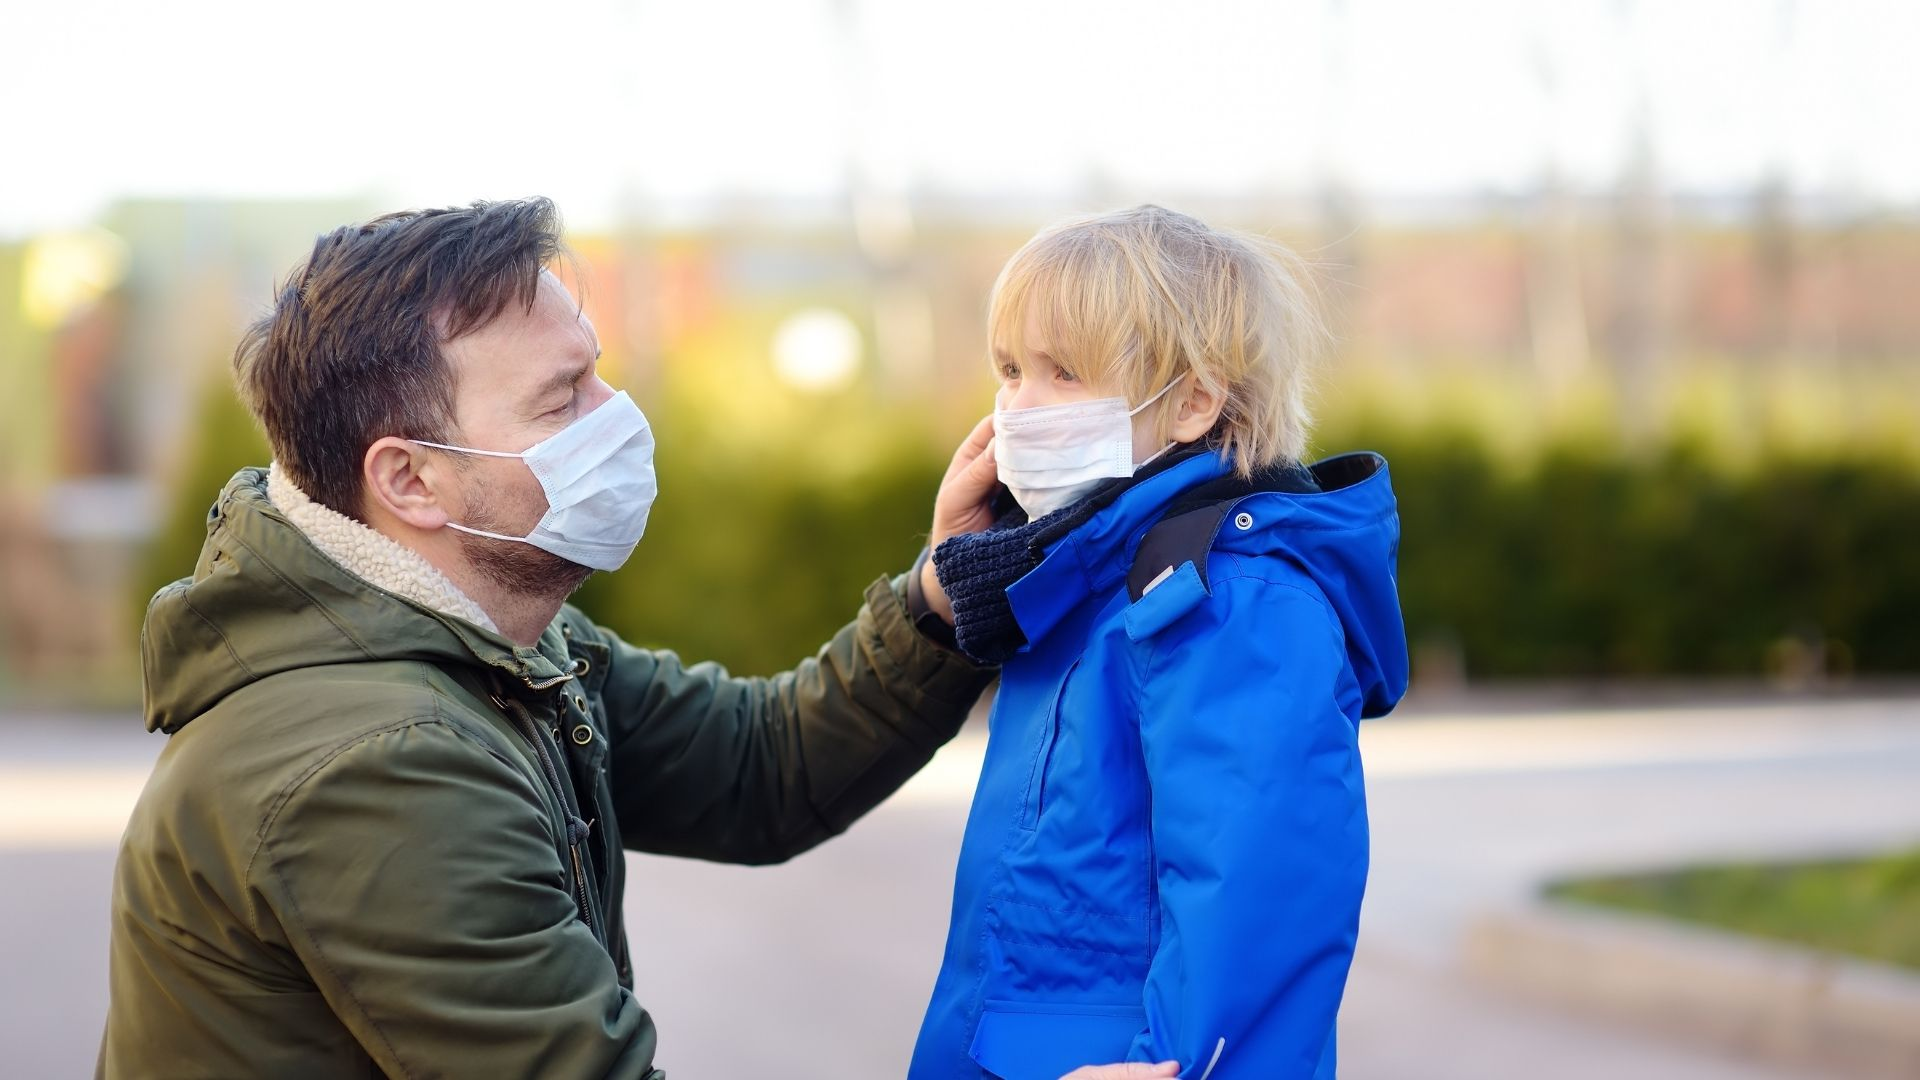 A father with mask on adjusting his child's mask